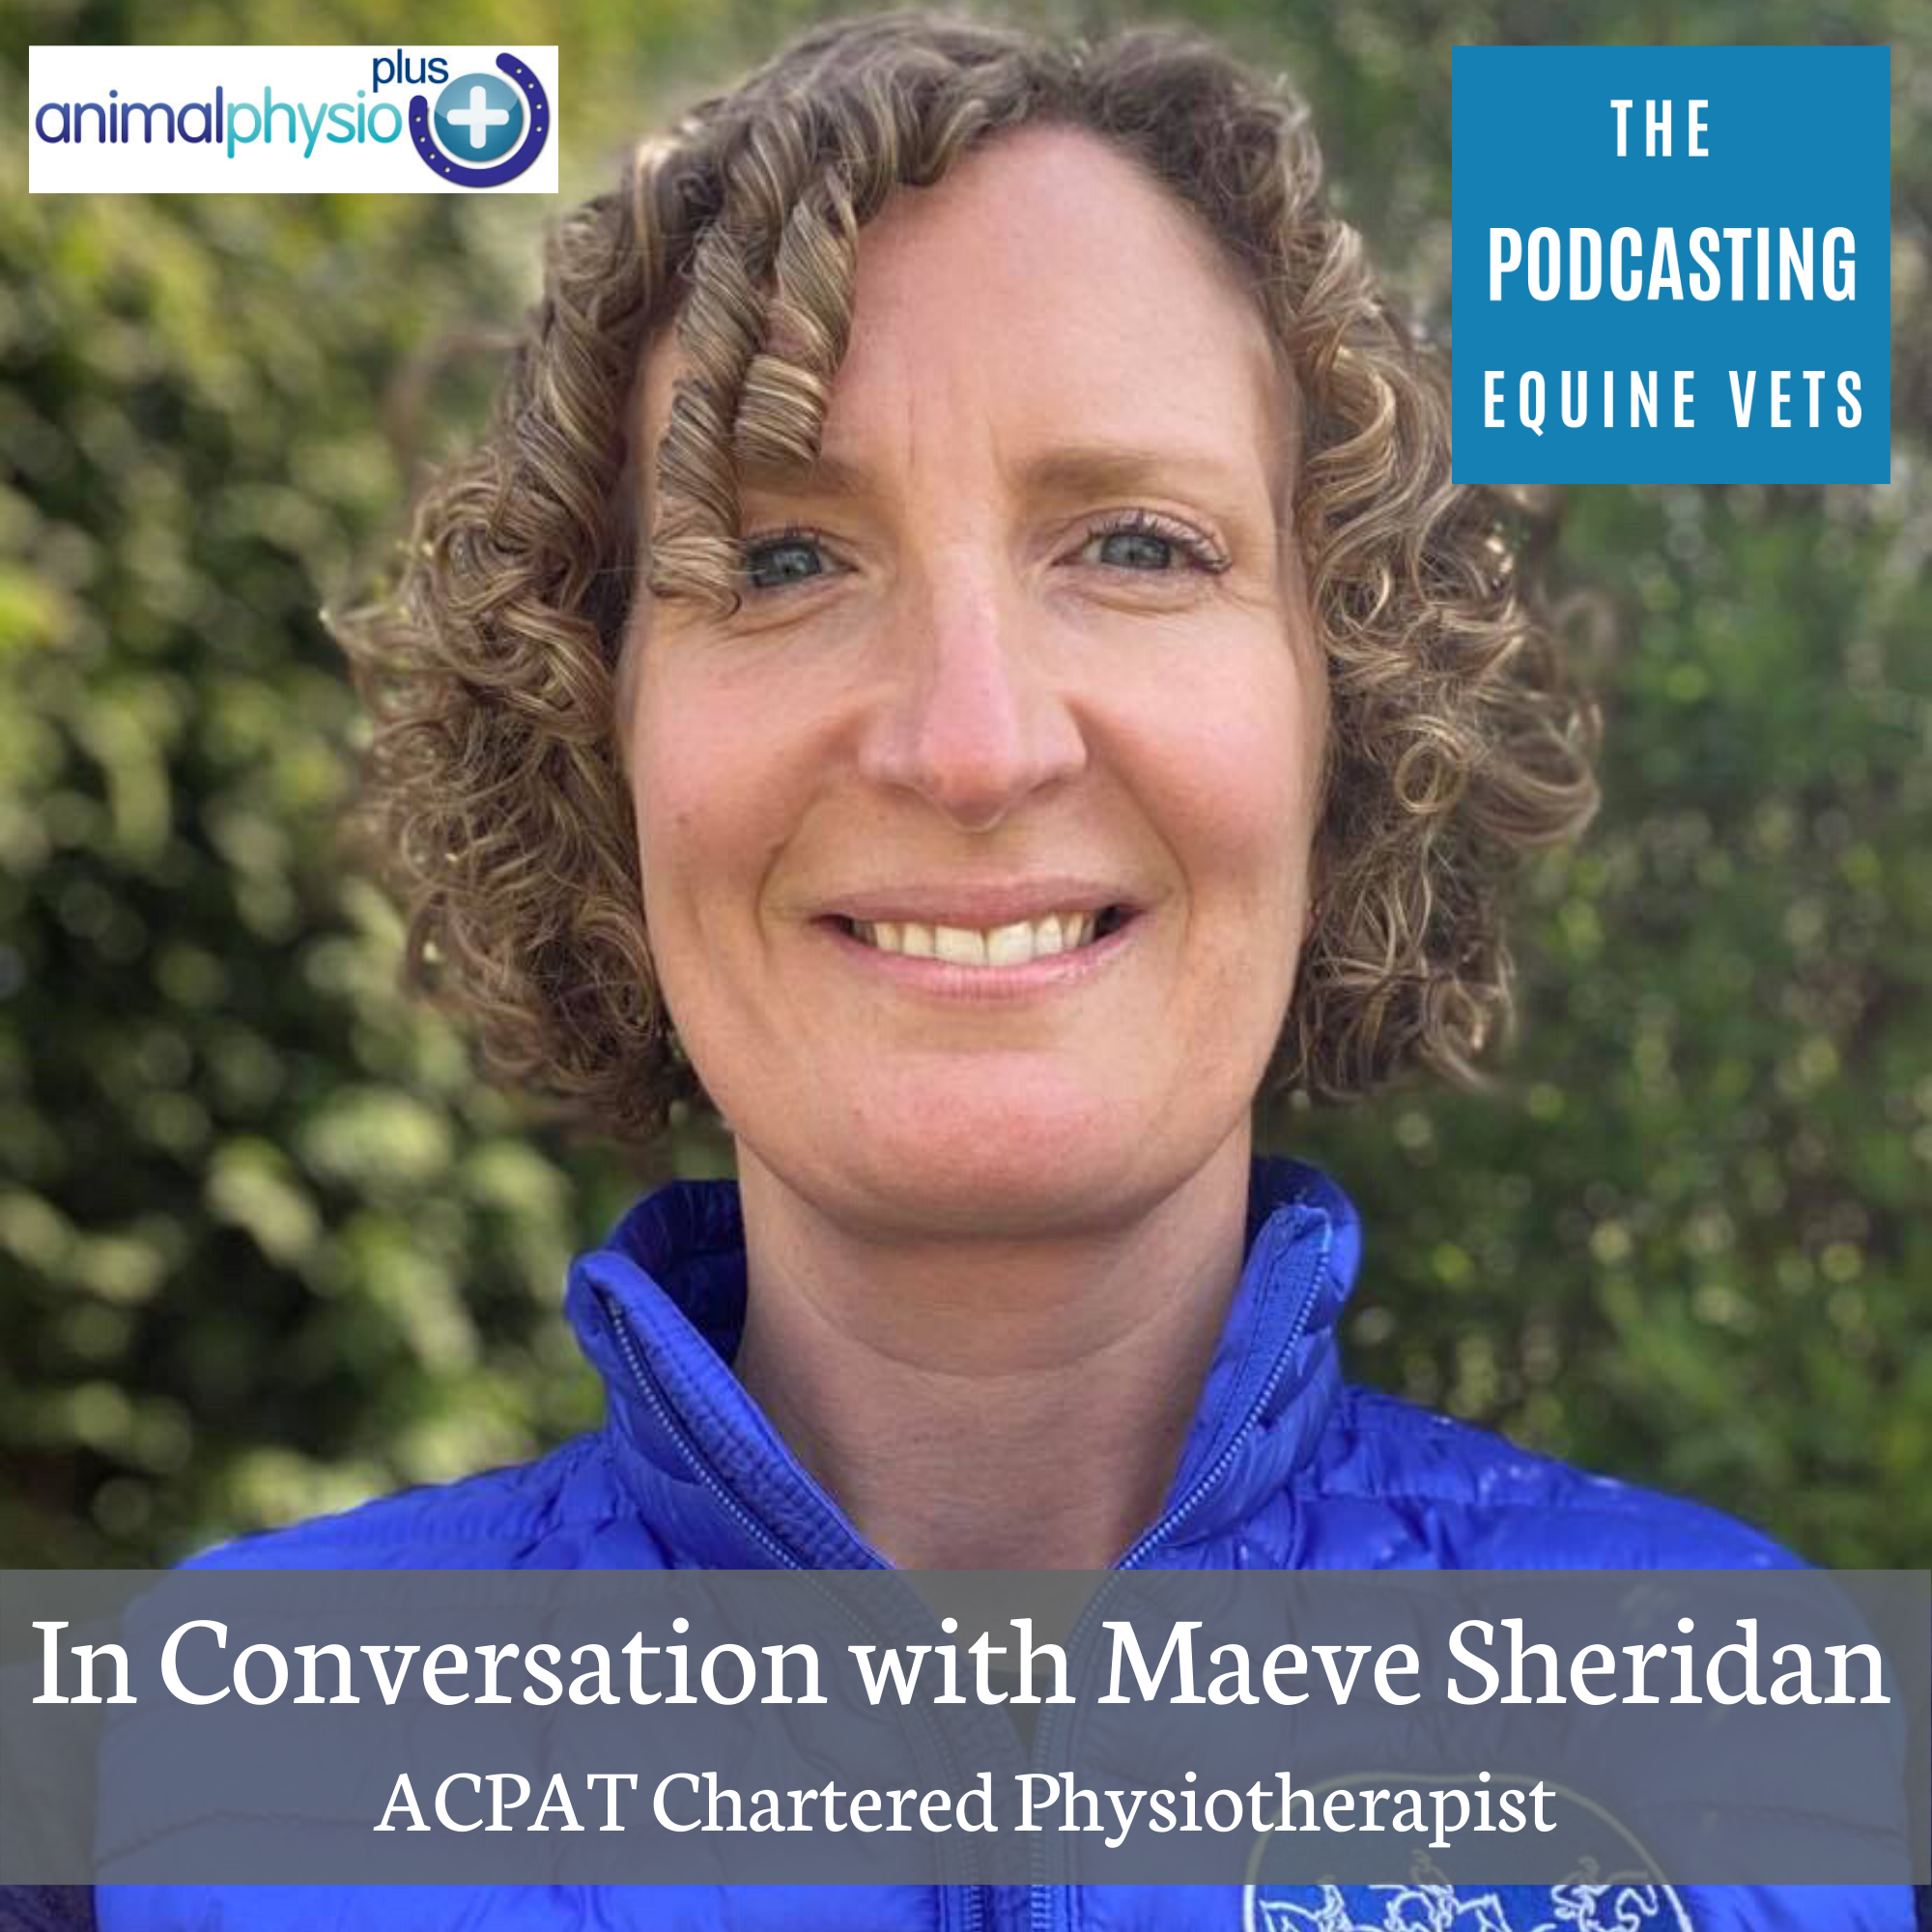 In Conversation With Maeve Sheridan - ACPAT Chartered Physiotherapist